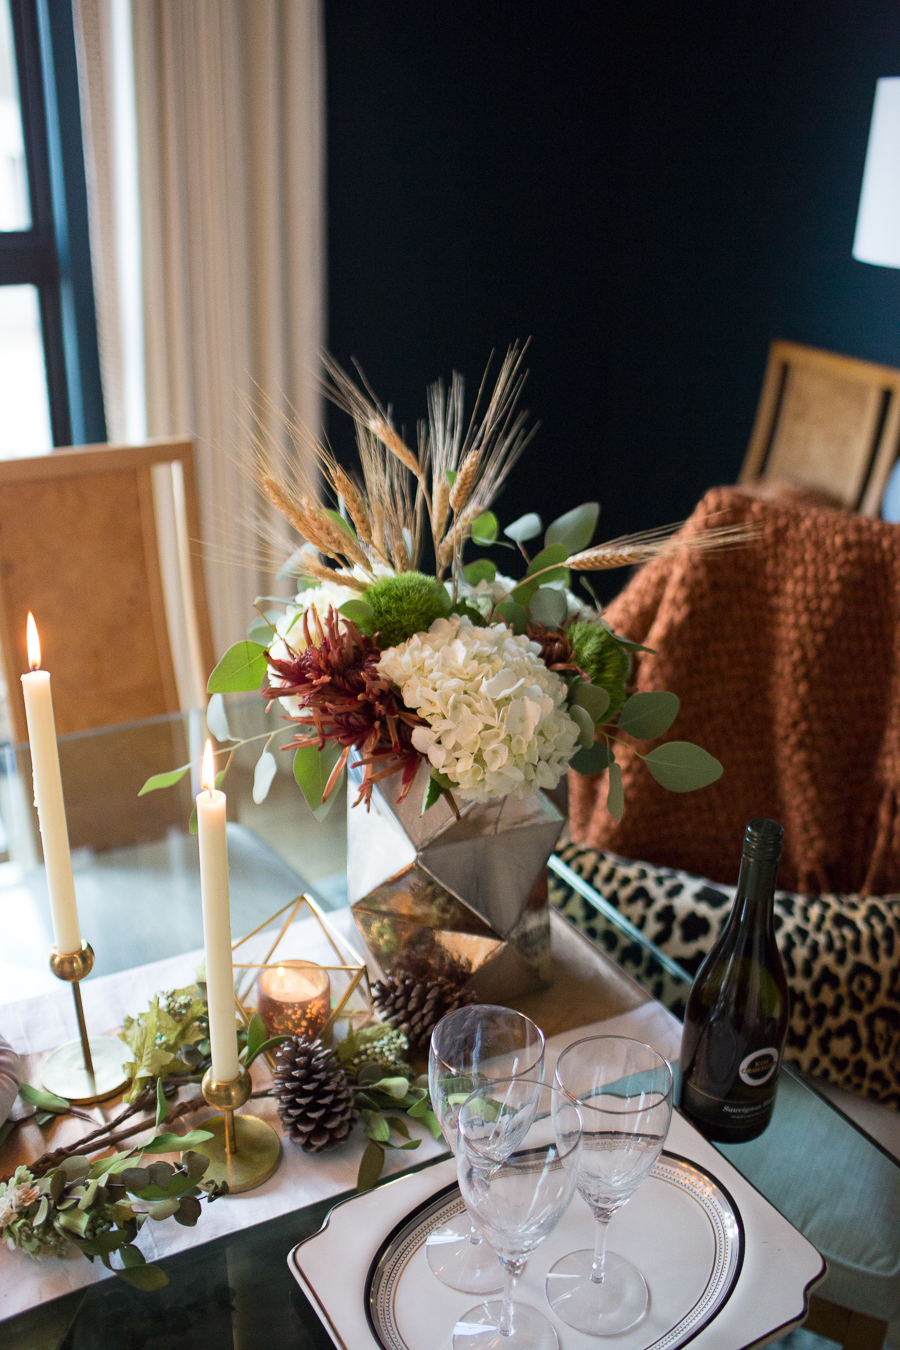 Simple Ways to Decorate for the Holidays from West Elm